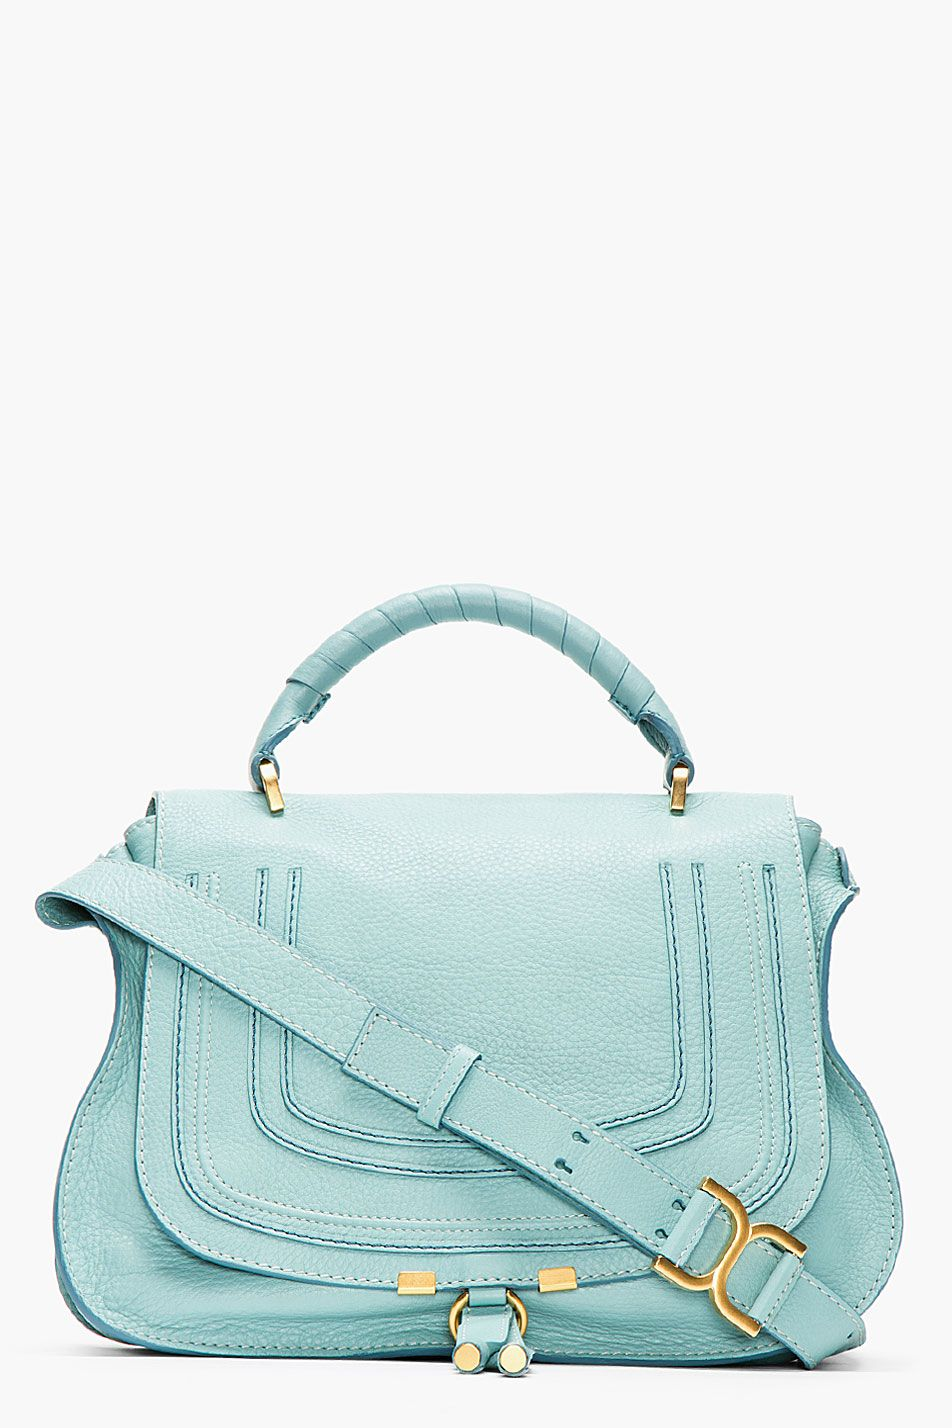 37a4fc0482 Chloe Mint Green Leather Marcie Medium Handbag for women